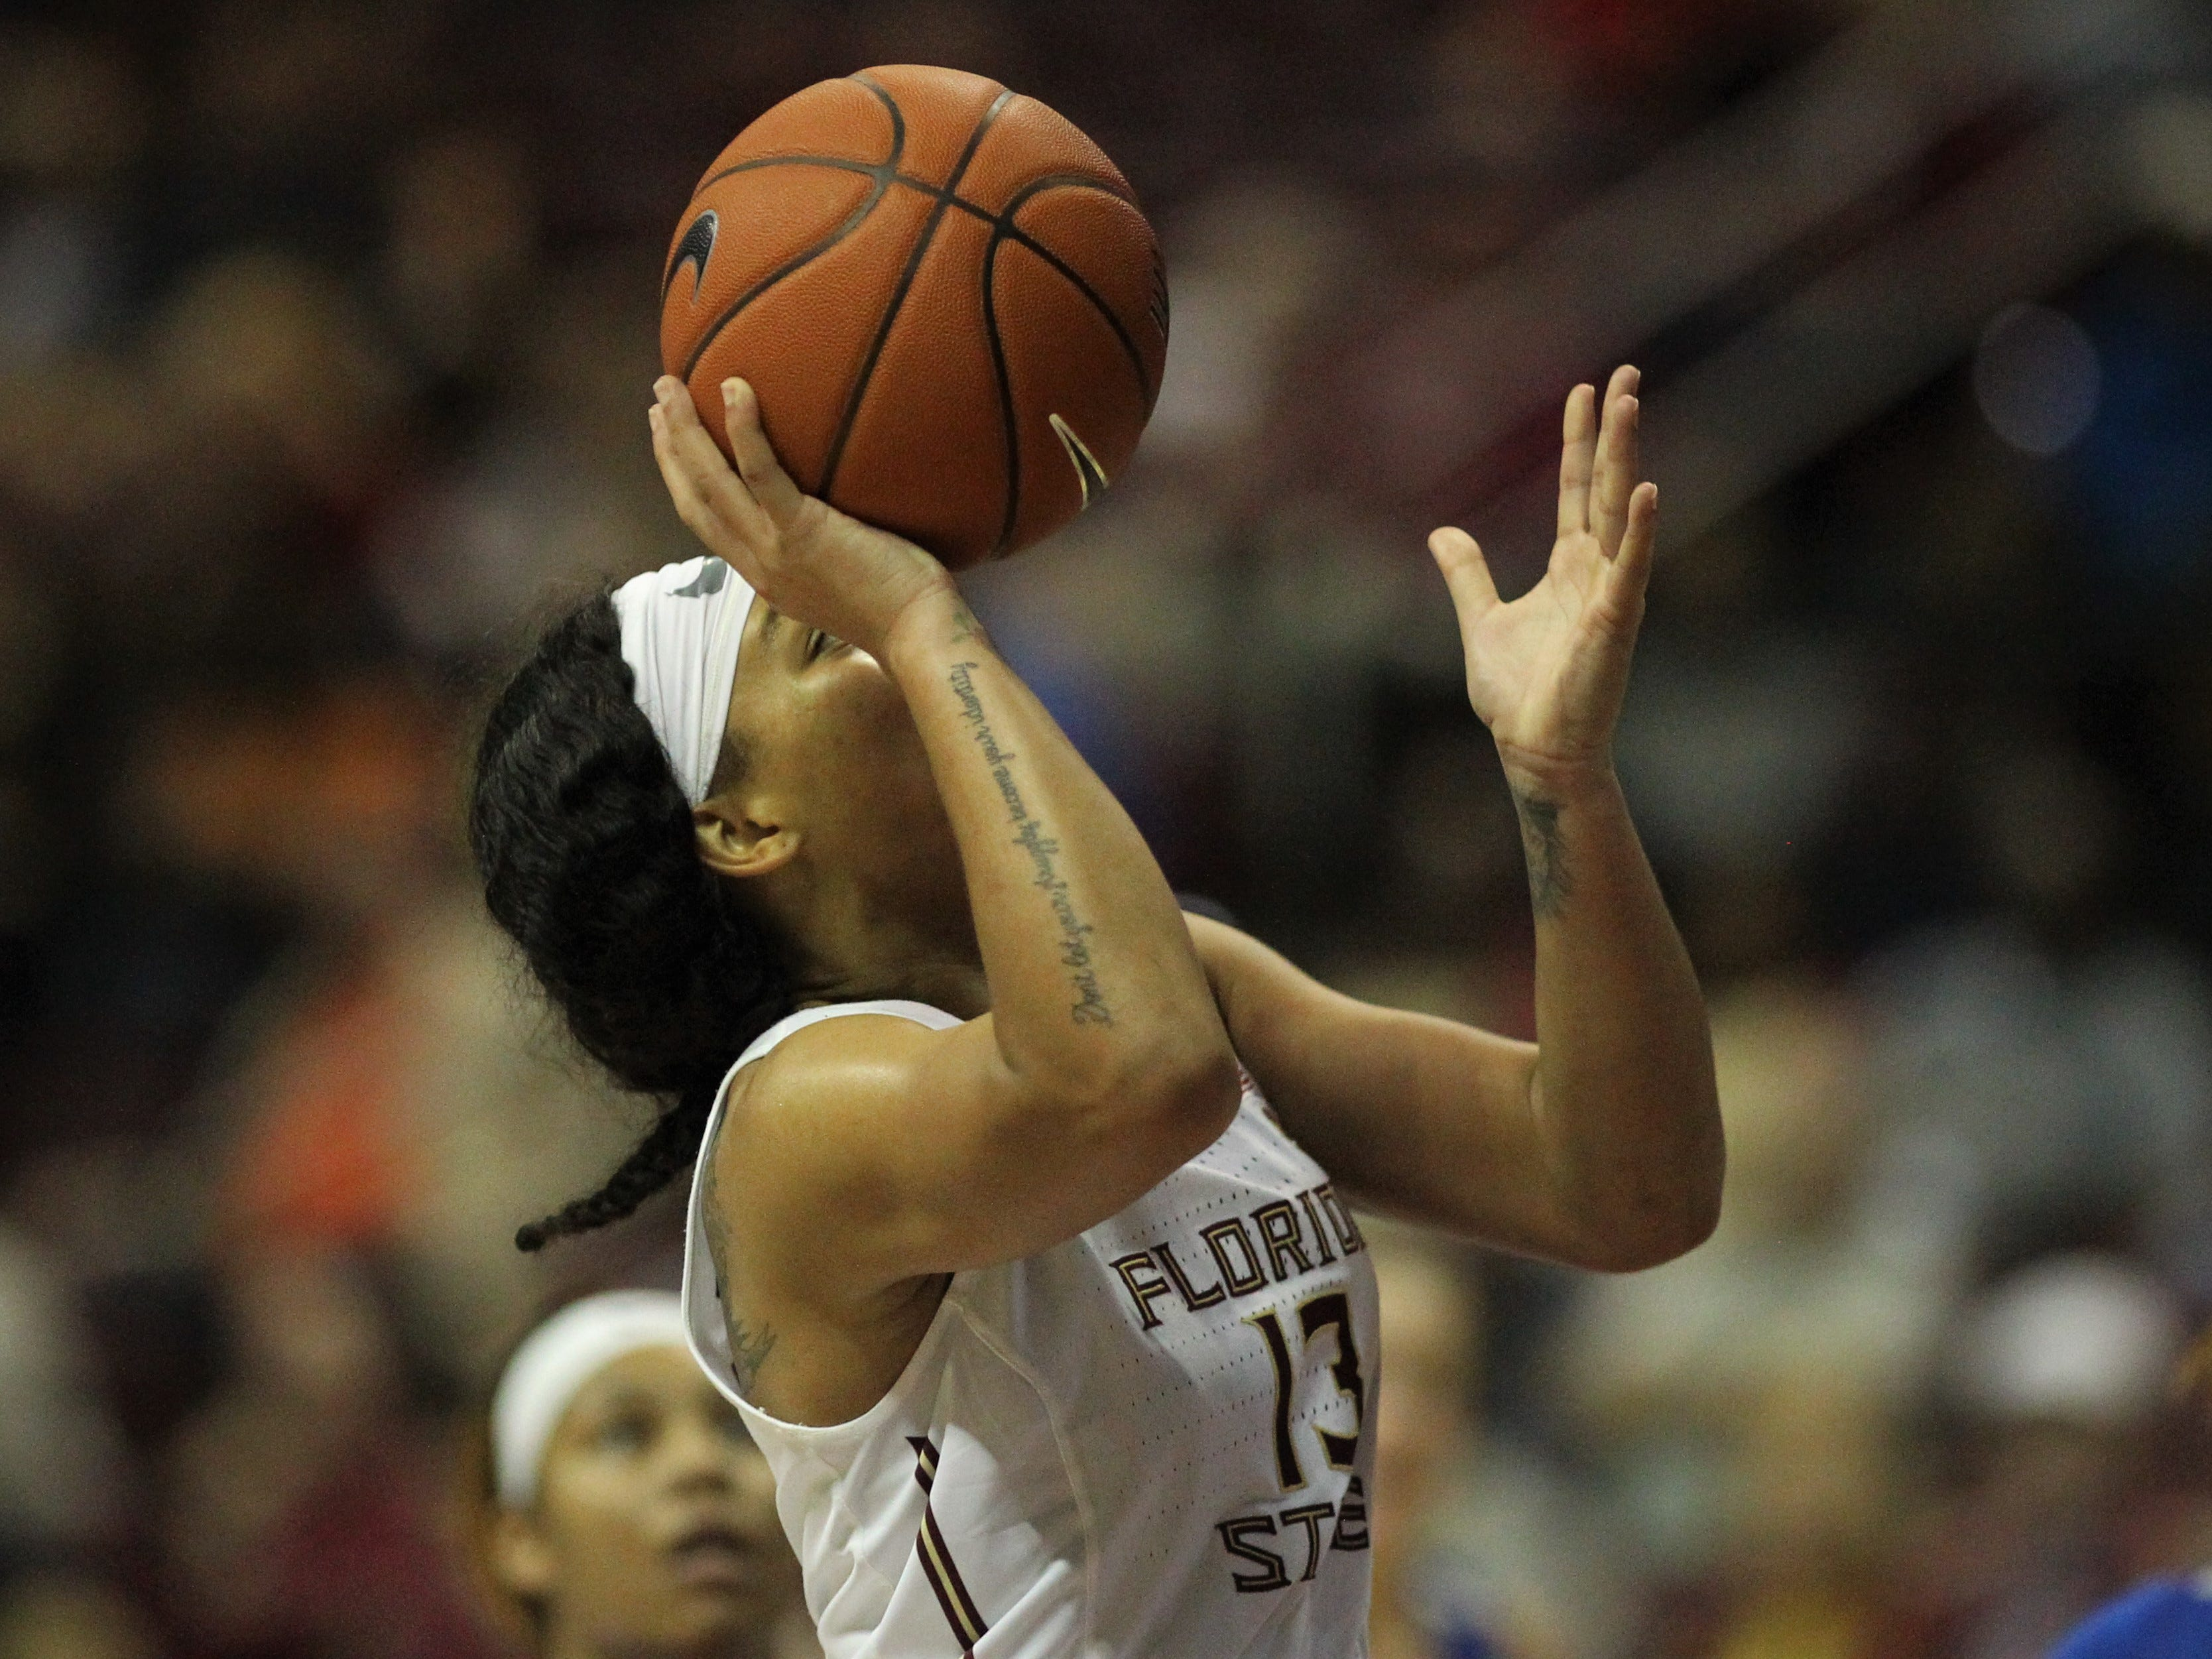 Florida State's Nausia Woolfolk goes up for a layup during the second half of the Seminoles' game against Florida at the Tucker Civic Center on Nov. 11, 2018.